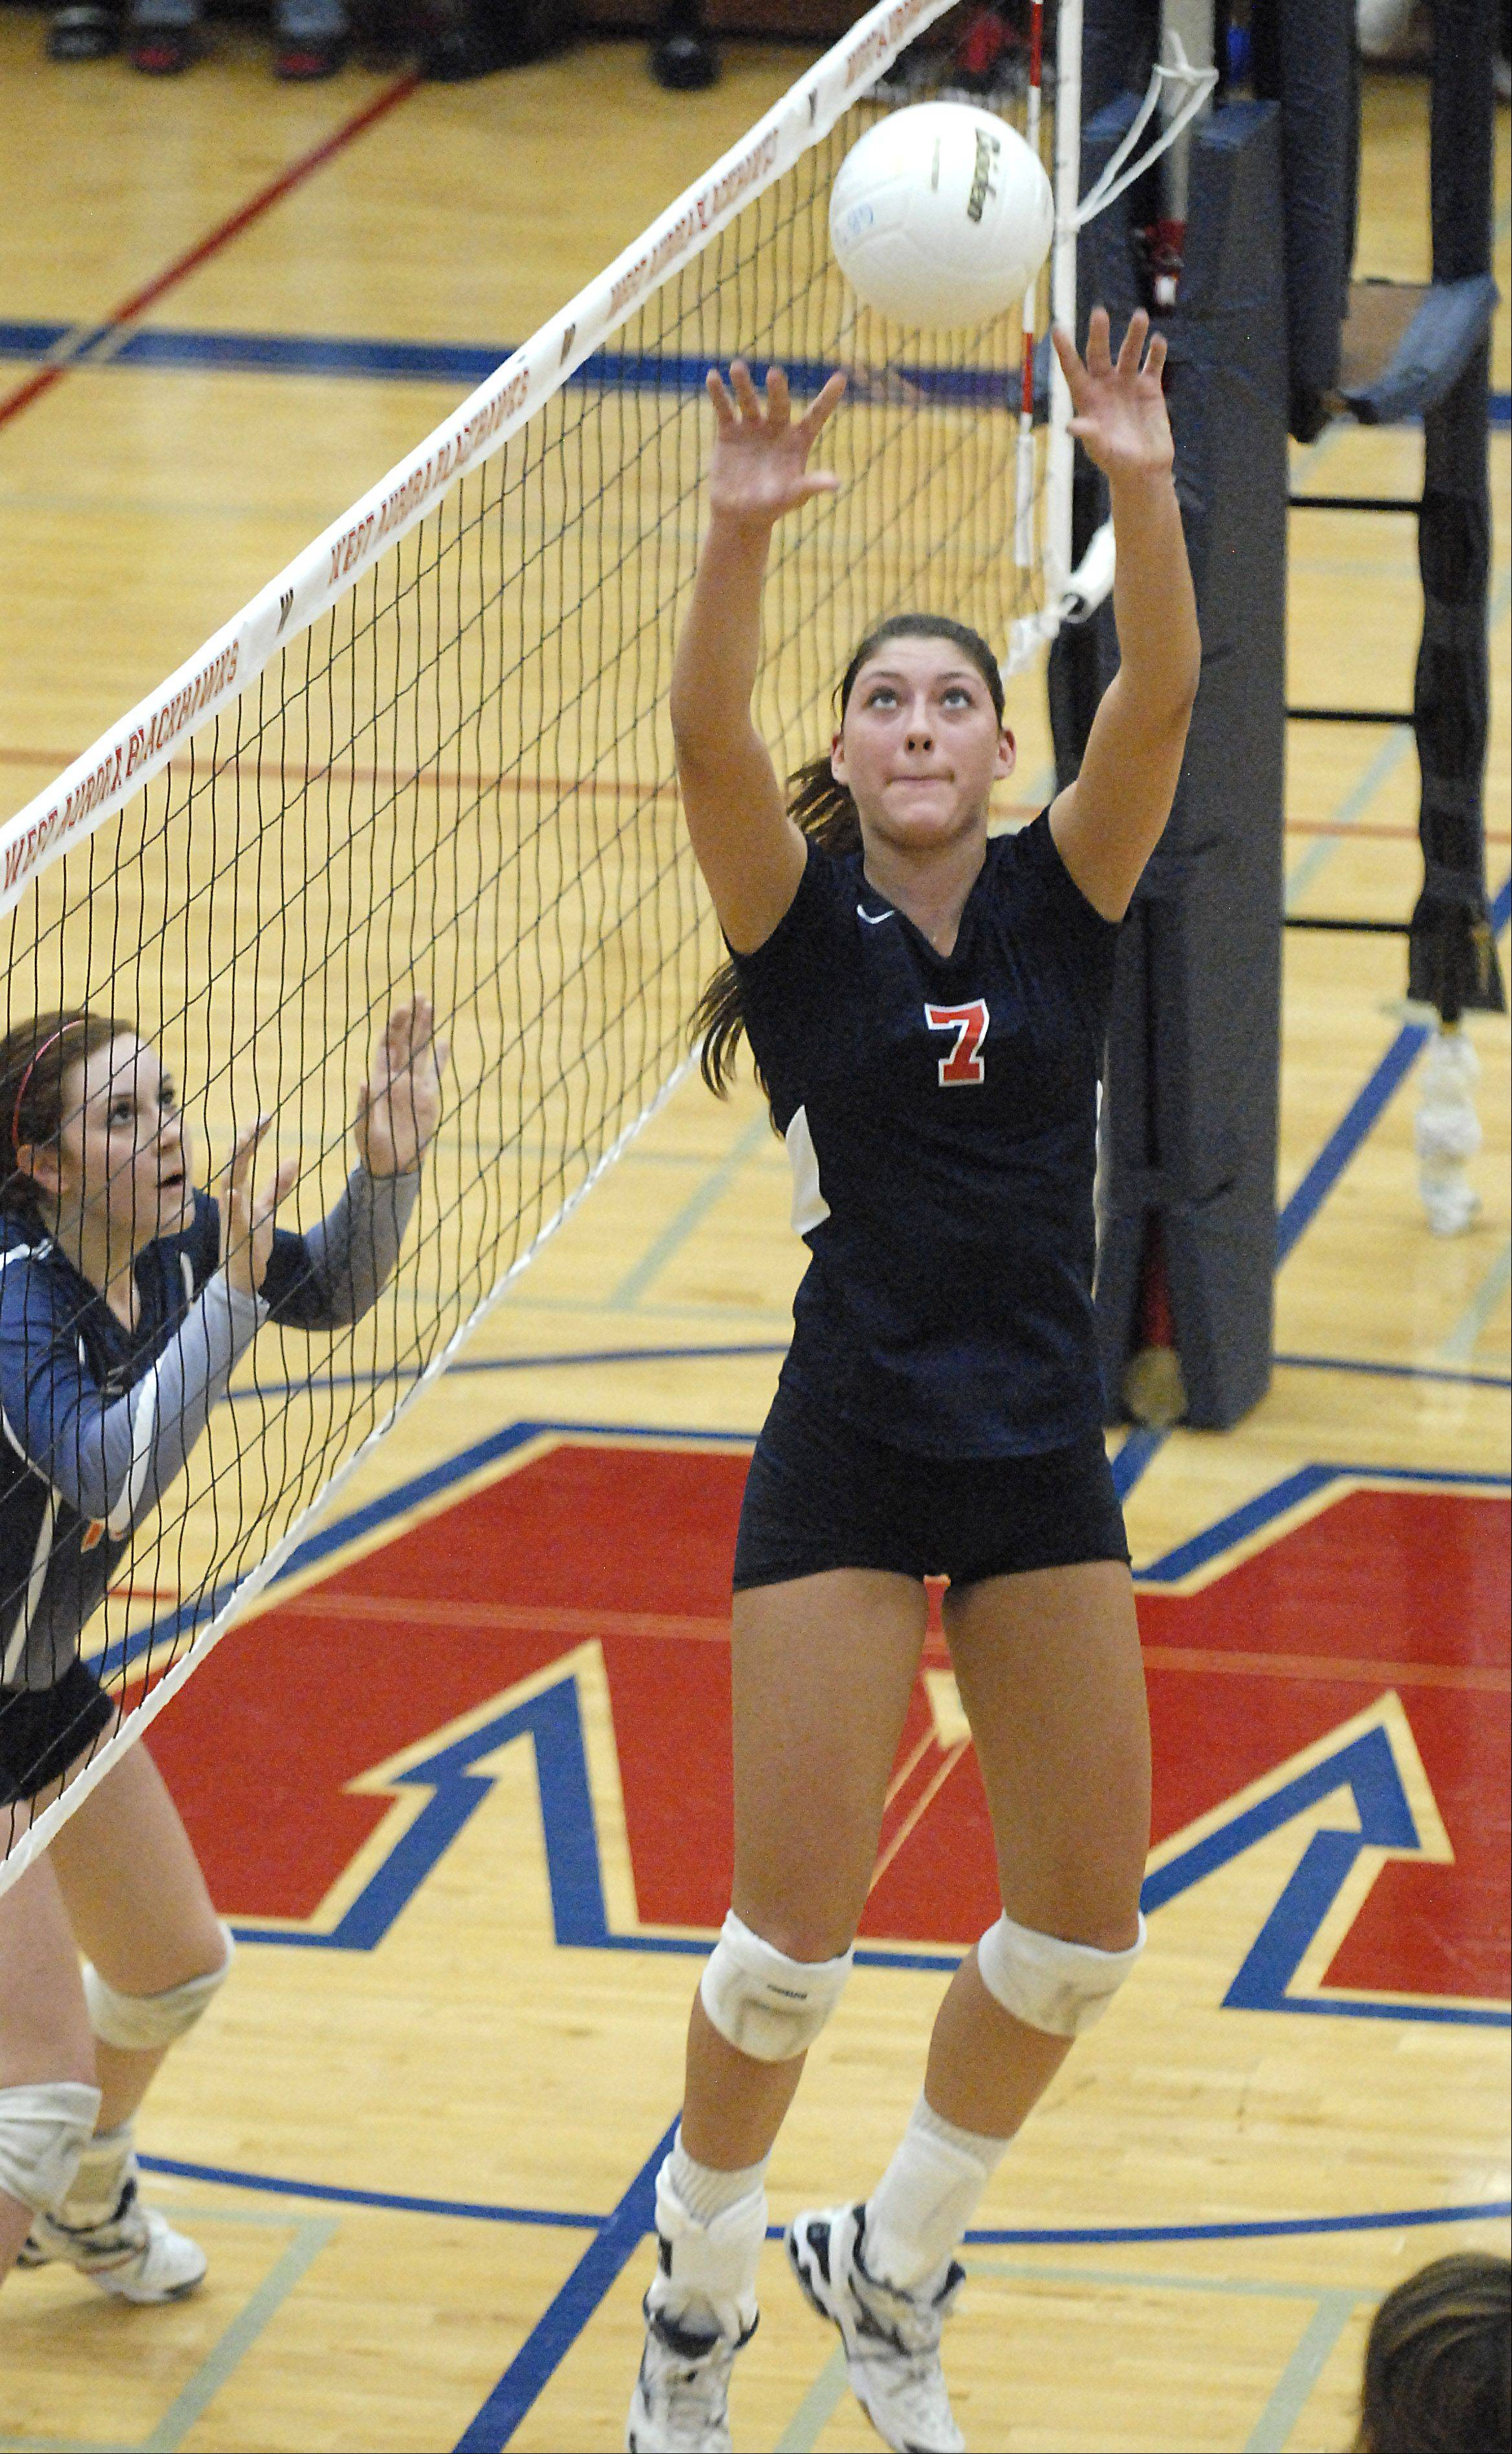 West Aurora's Lauren Carlini sets up a spike to be sent to Naperville North's Corinne Gajcak in the first game on Thursday, October 11.